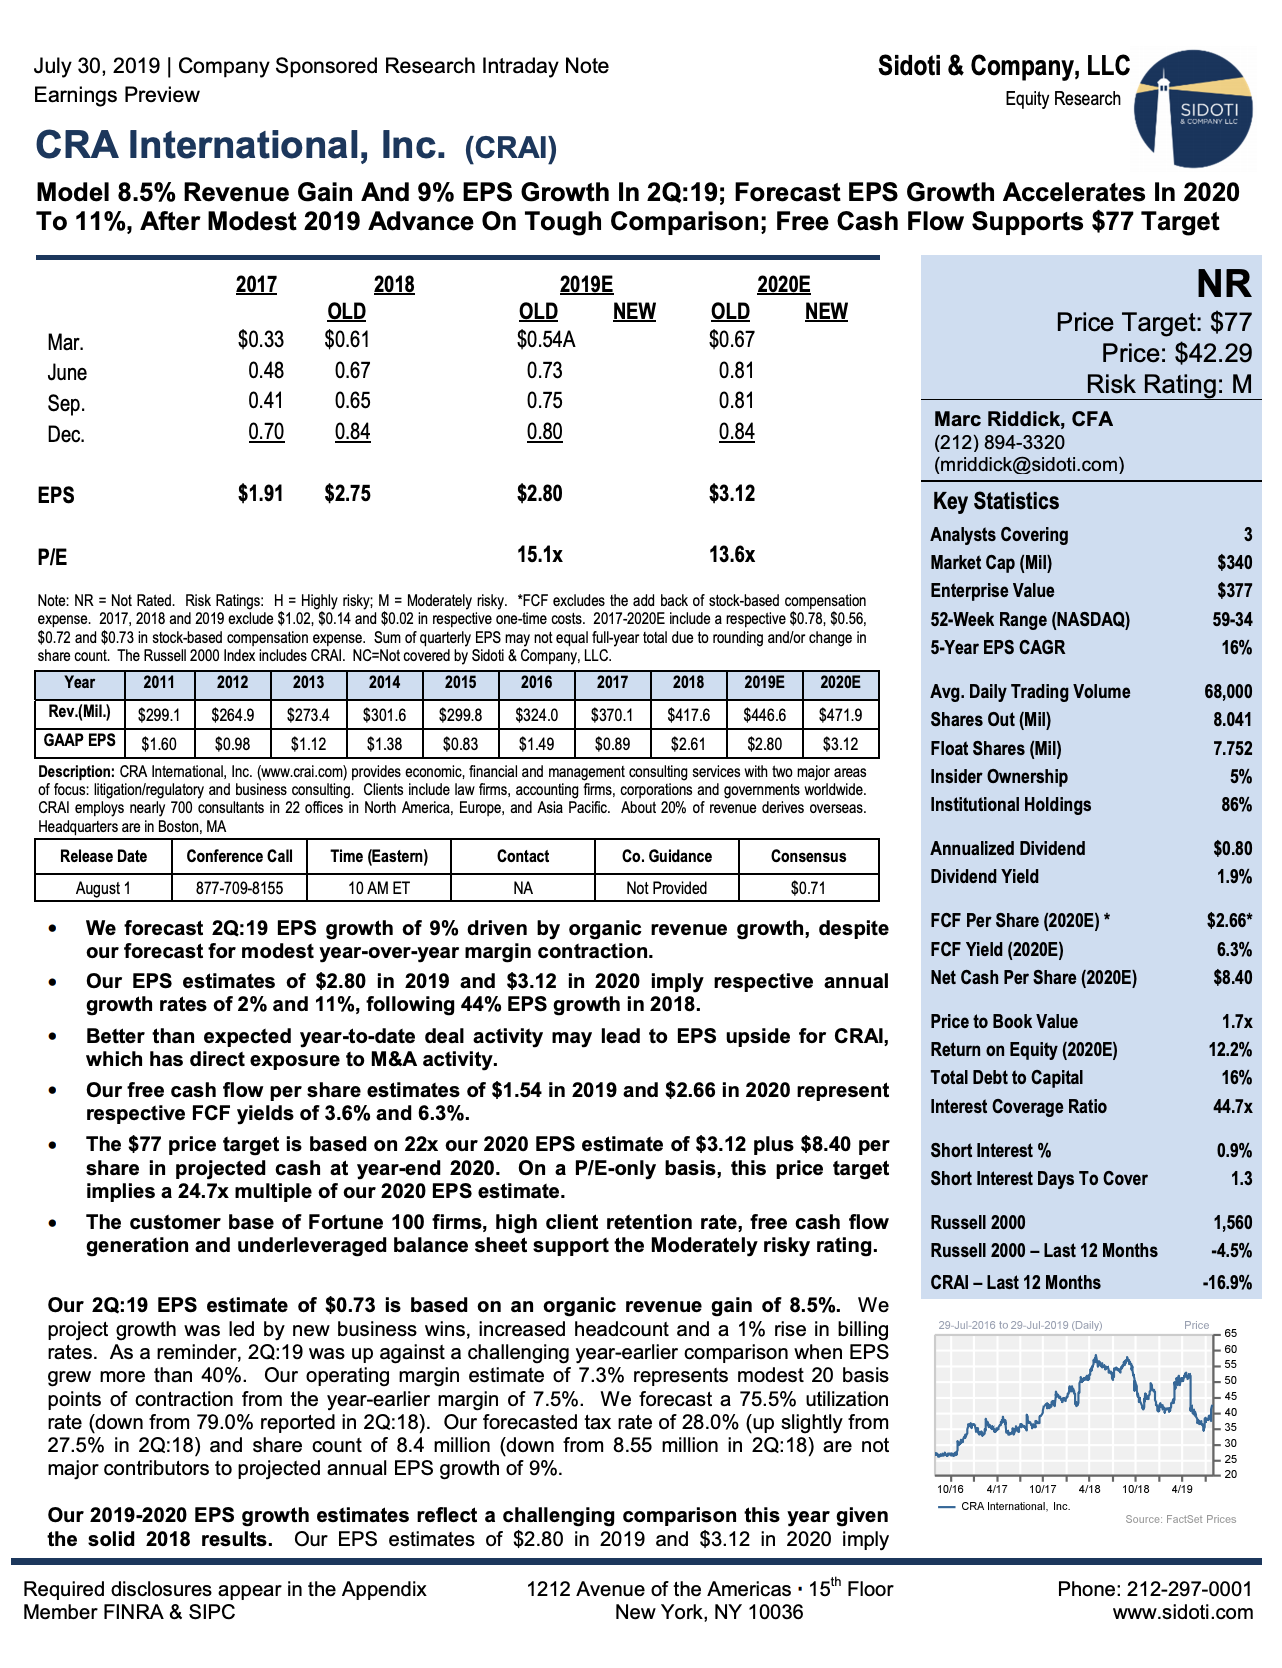 Earnings Preview: July 30, 2019